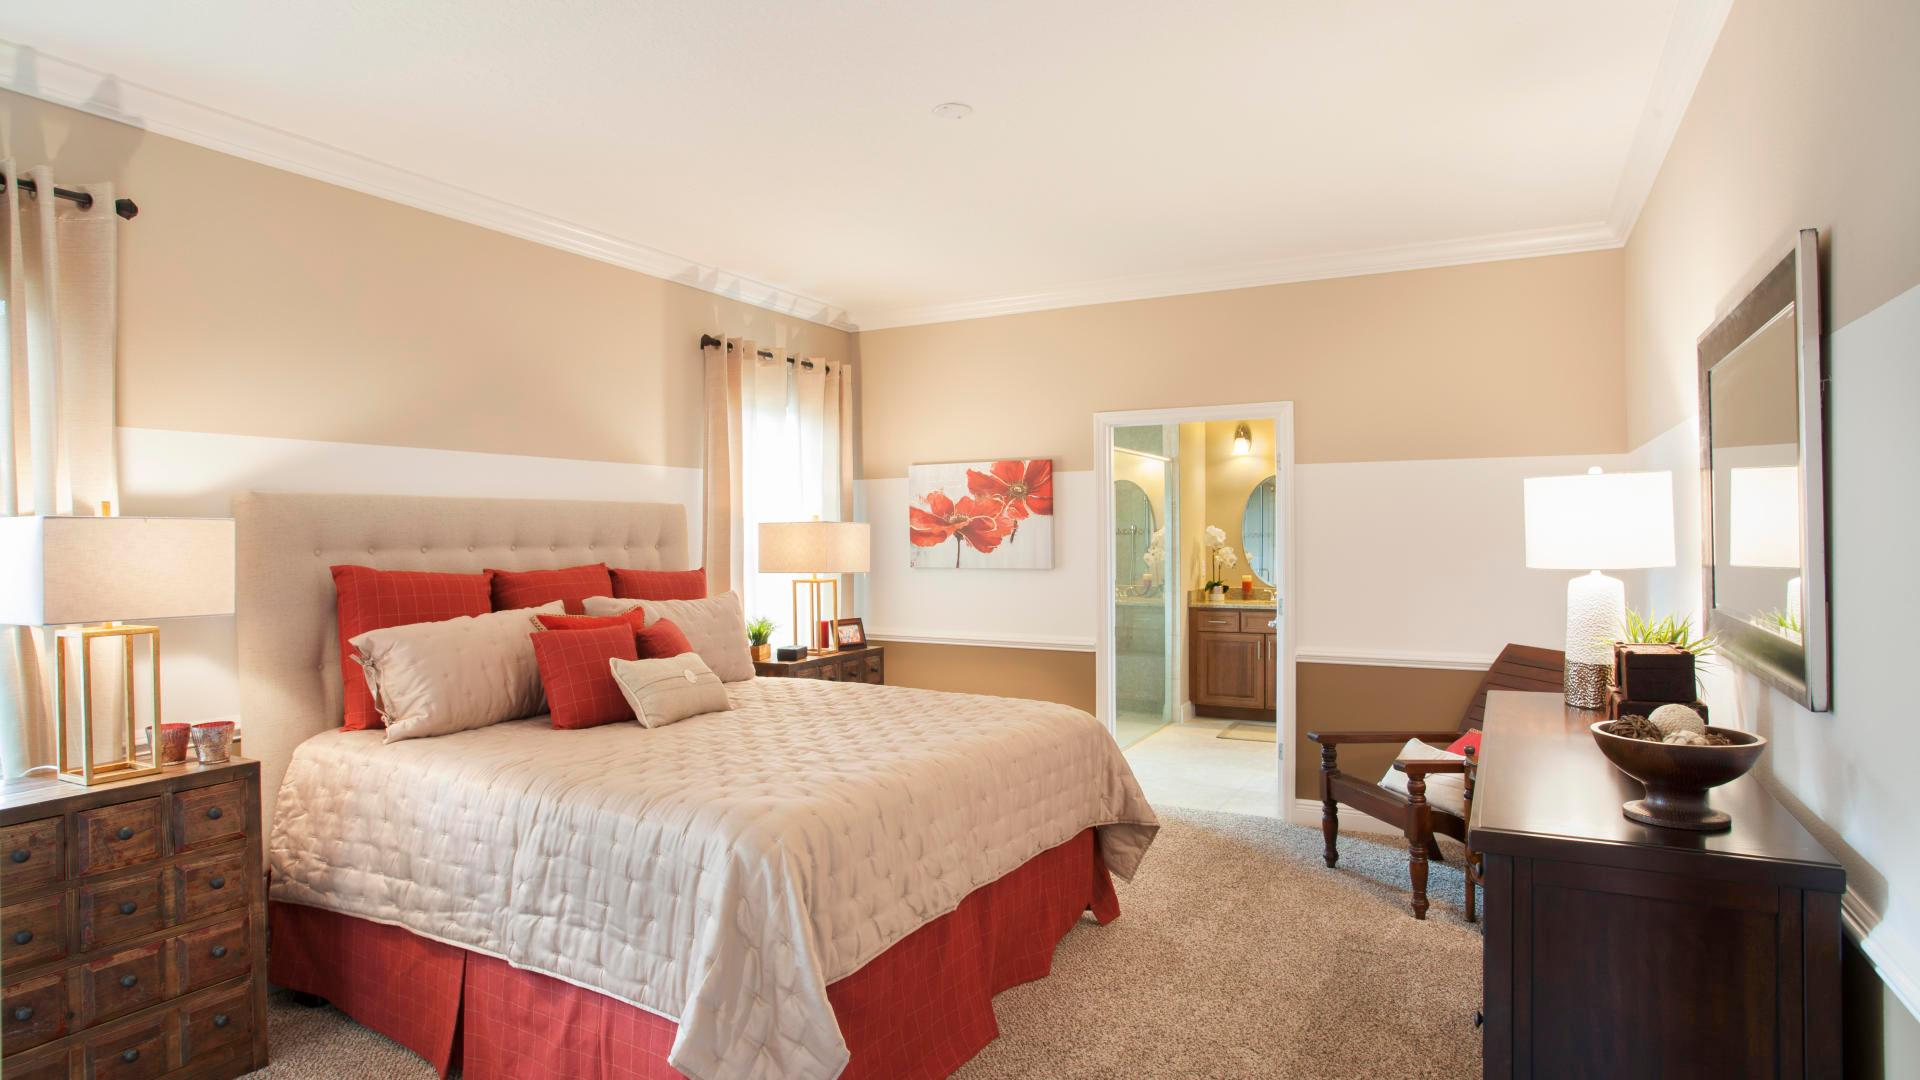 Bedroom featured in the Jensen By Maronda Homes in Indian River County, FL